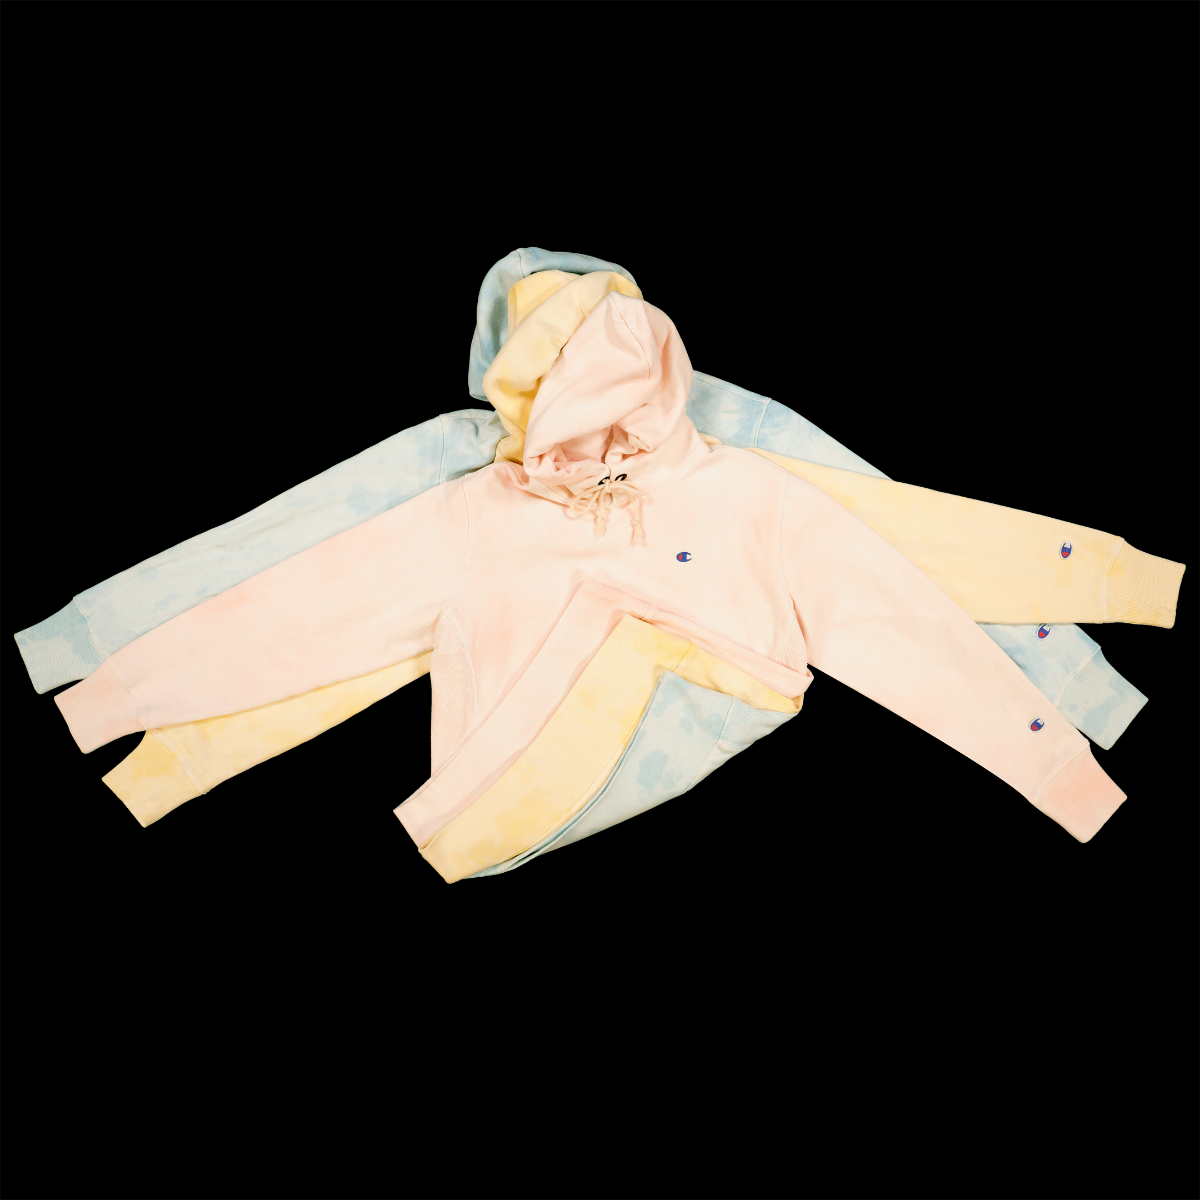 Mr Porter Updates Champion tops with Pastel Coloured Tie-Dye